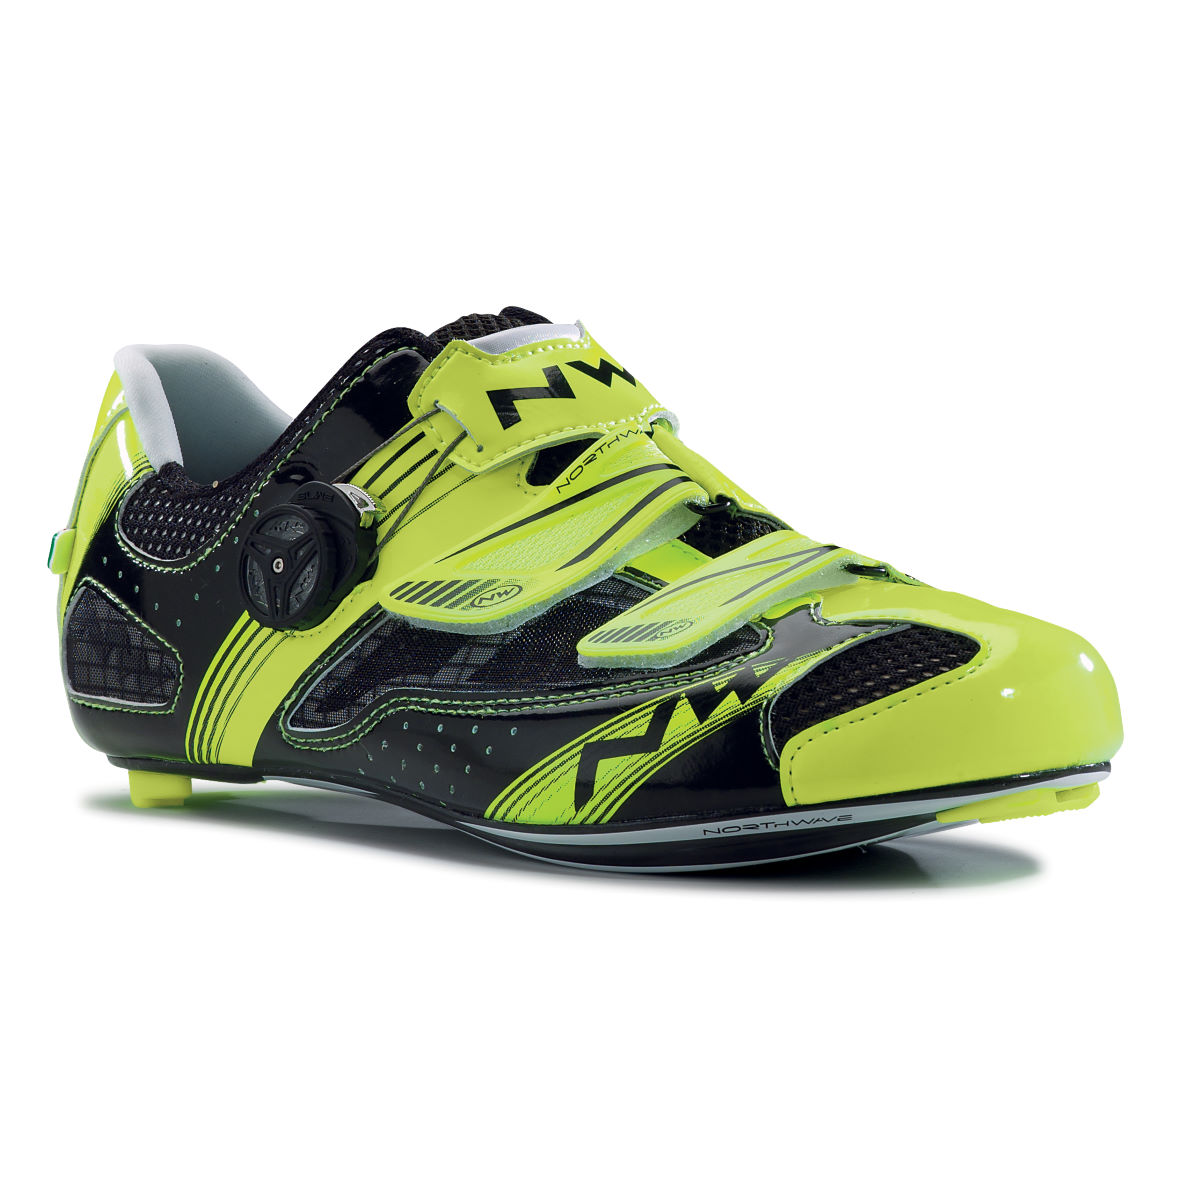 Northwave Galaxy Road Shoes   Road Shoes